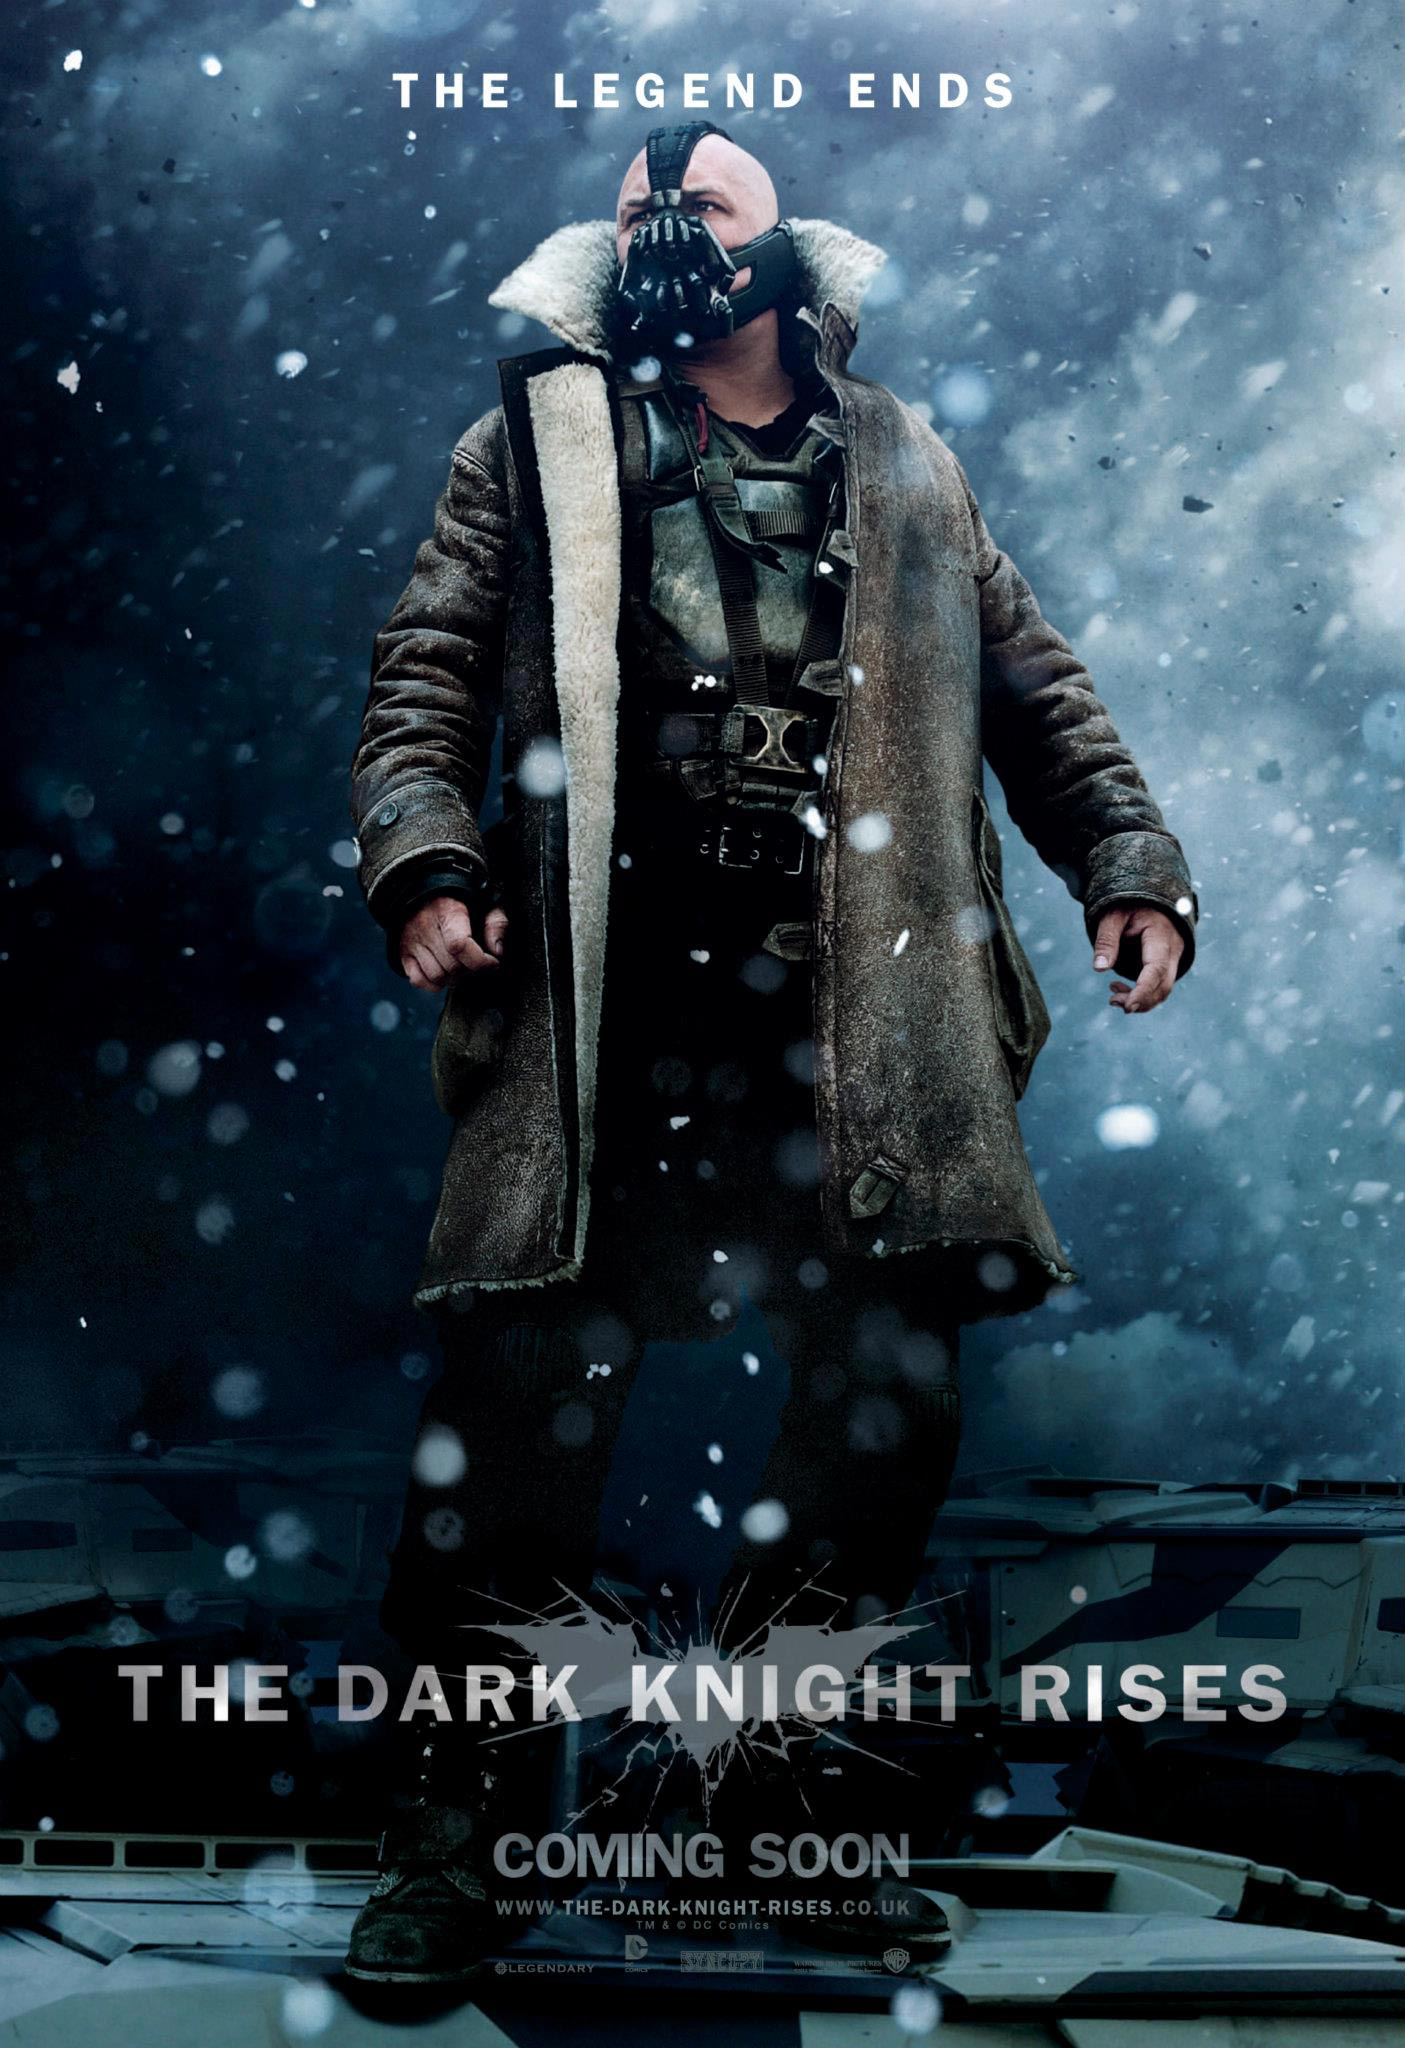 Bane Tom Hardy as Bane in 'the